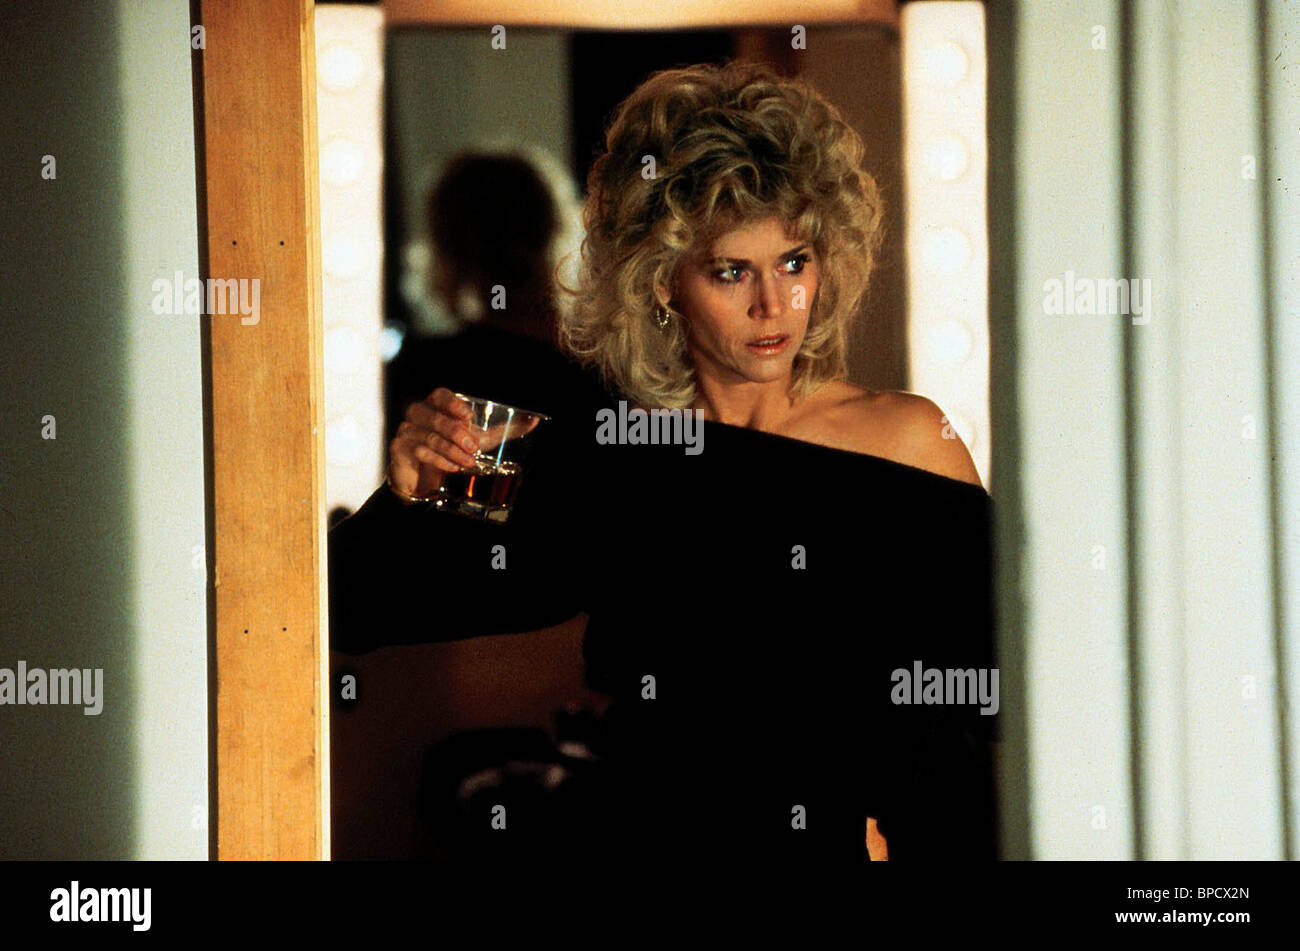 JANE FONDA THE MORNING AFTER (1986) - Stock Image